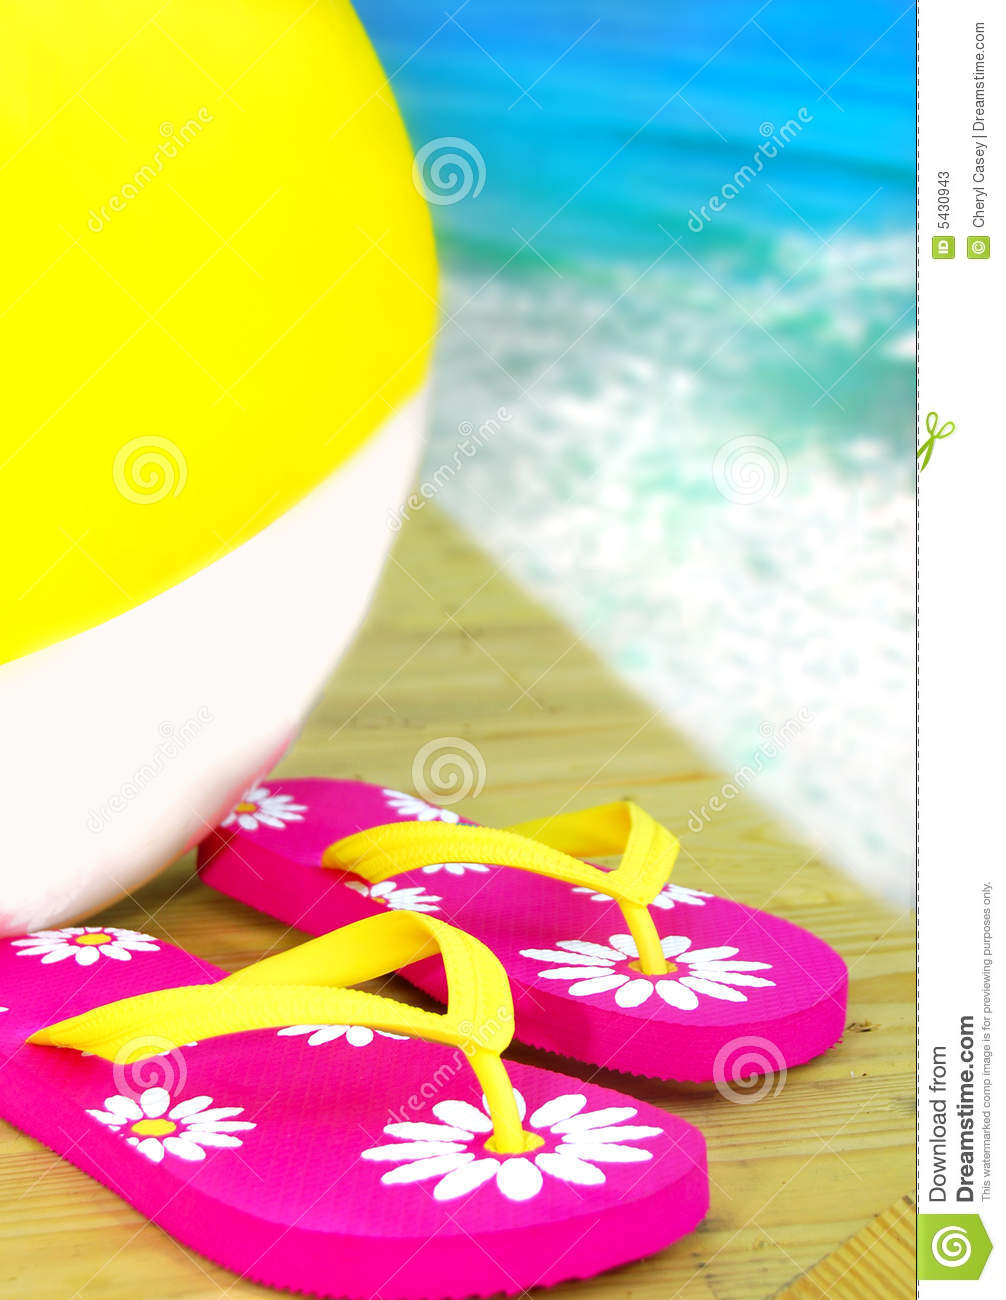 Beautiful Beach Ball In Ocean Flops And Beachball By Stock Photos E For Inspiration Decorating